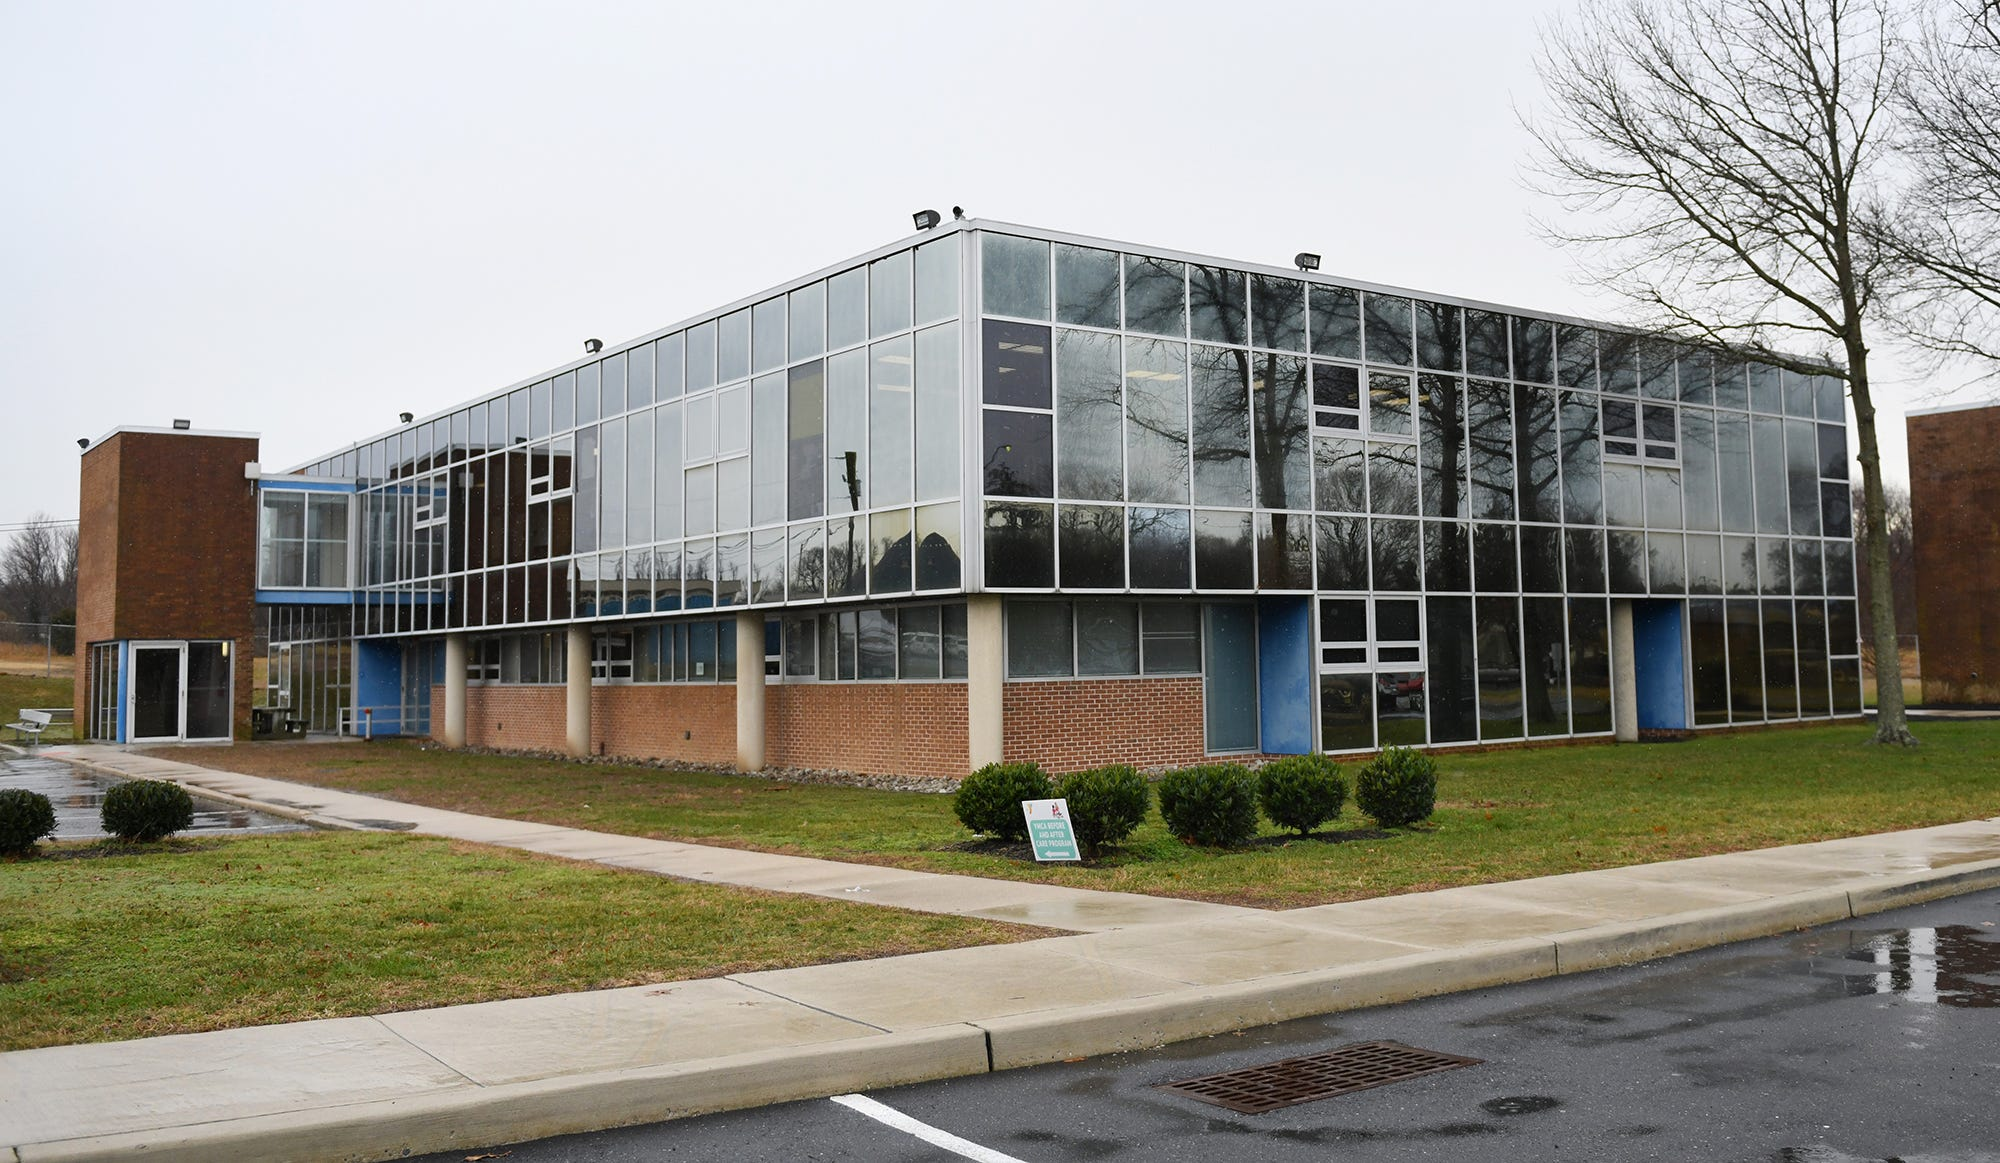 The Bridgeton Public Charter School, located at 790 East Commerce Street in Bridgeton, was a former county administration building.